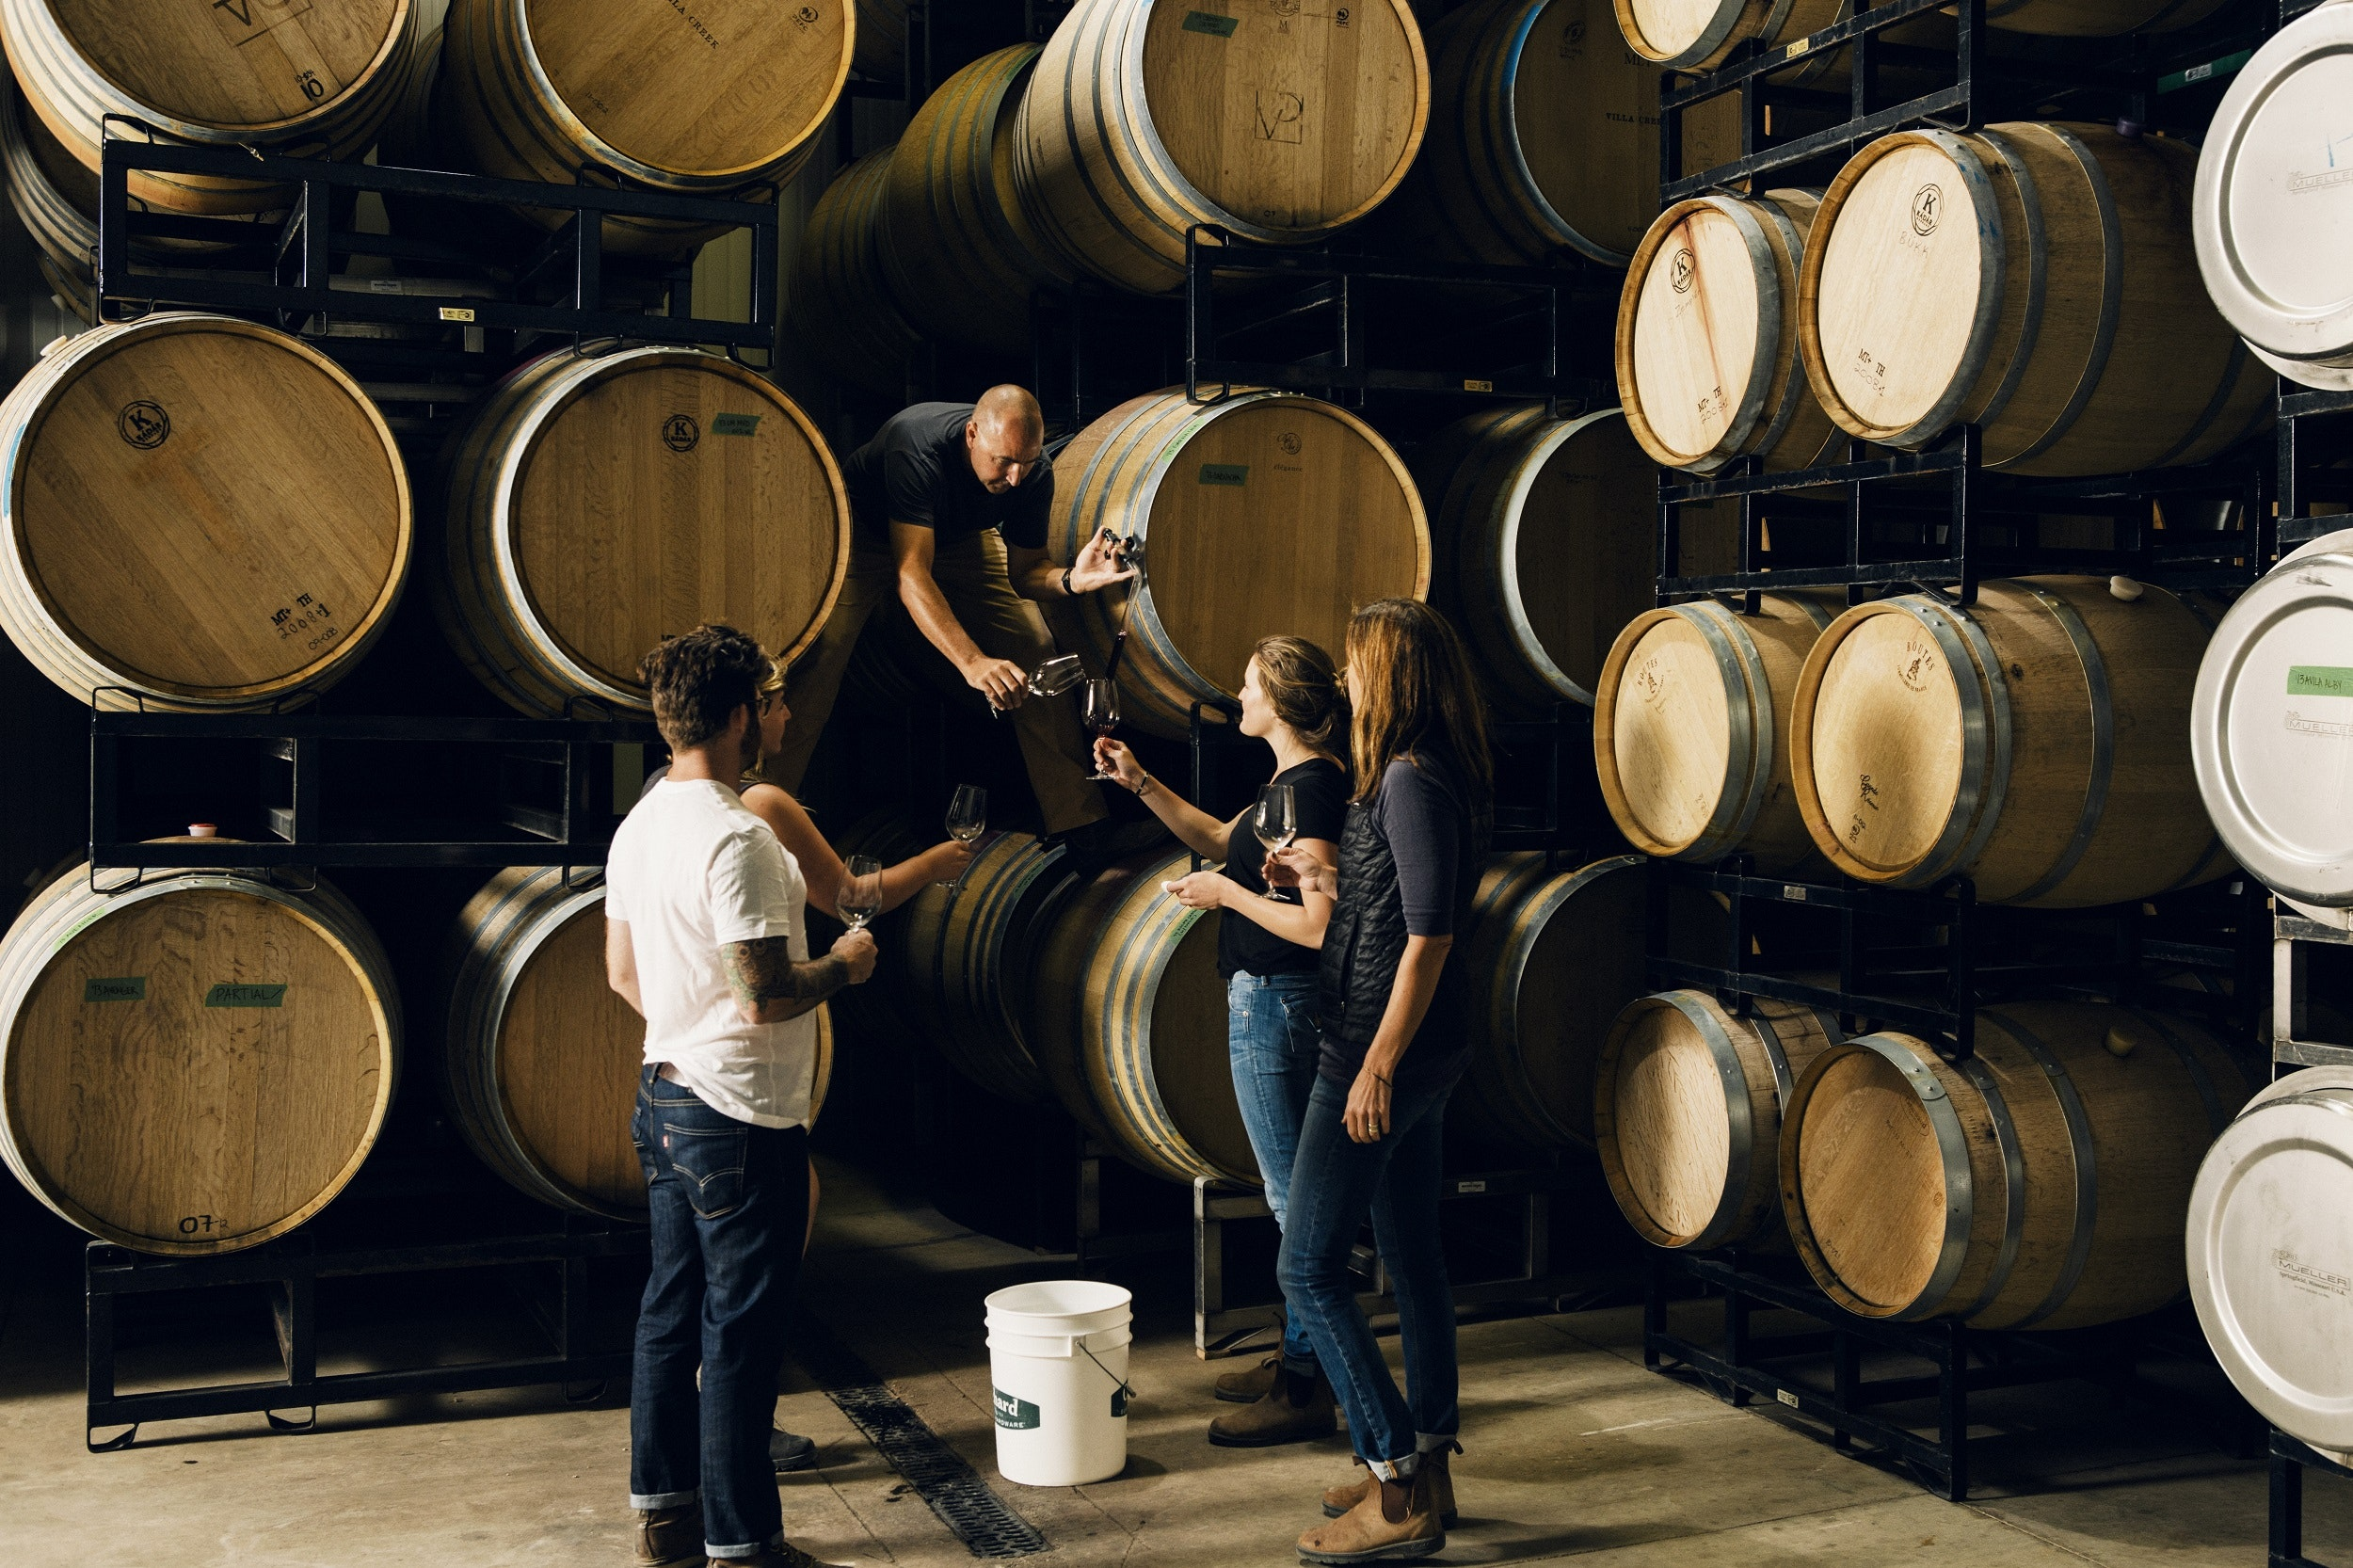 Villa Creek started as a restaurant over 20 years ago, but today focuses exclusively on its winery and 60-acre, organic- and biodynamic-certified Maha Estate.